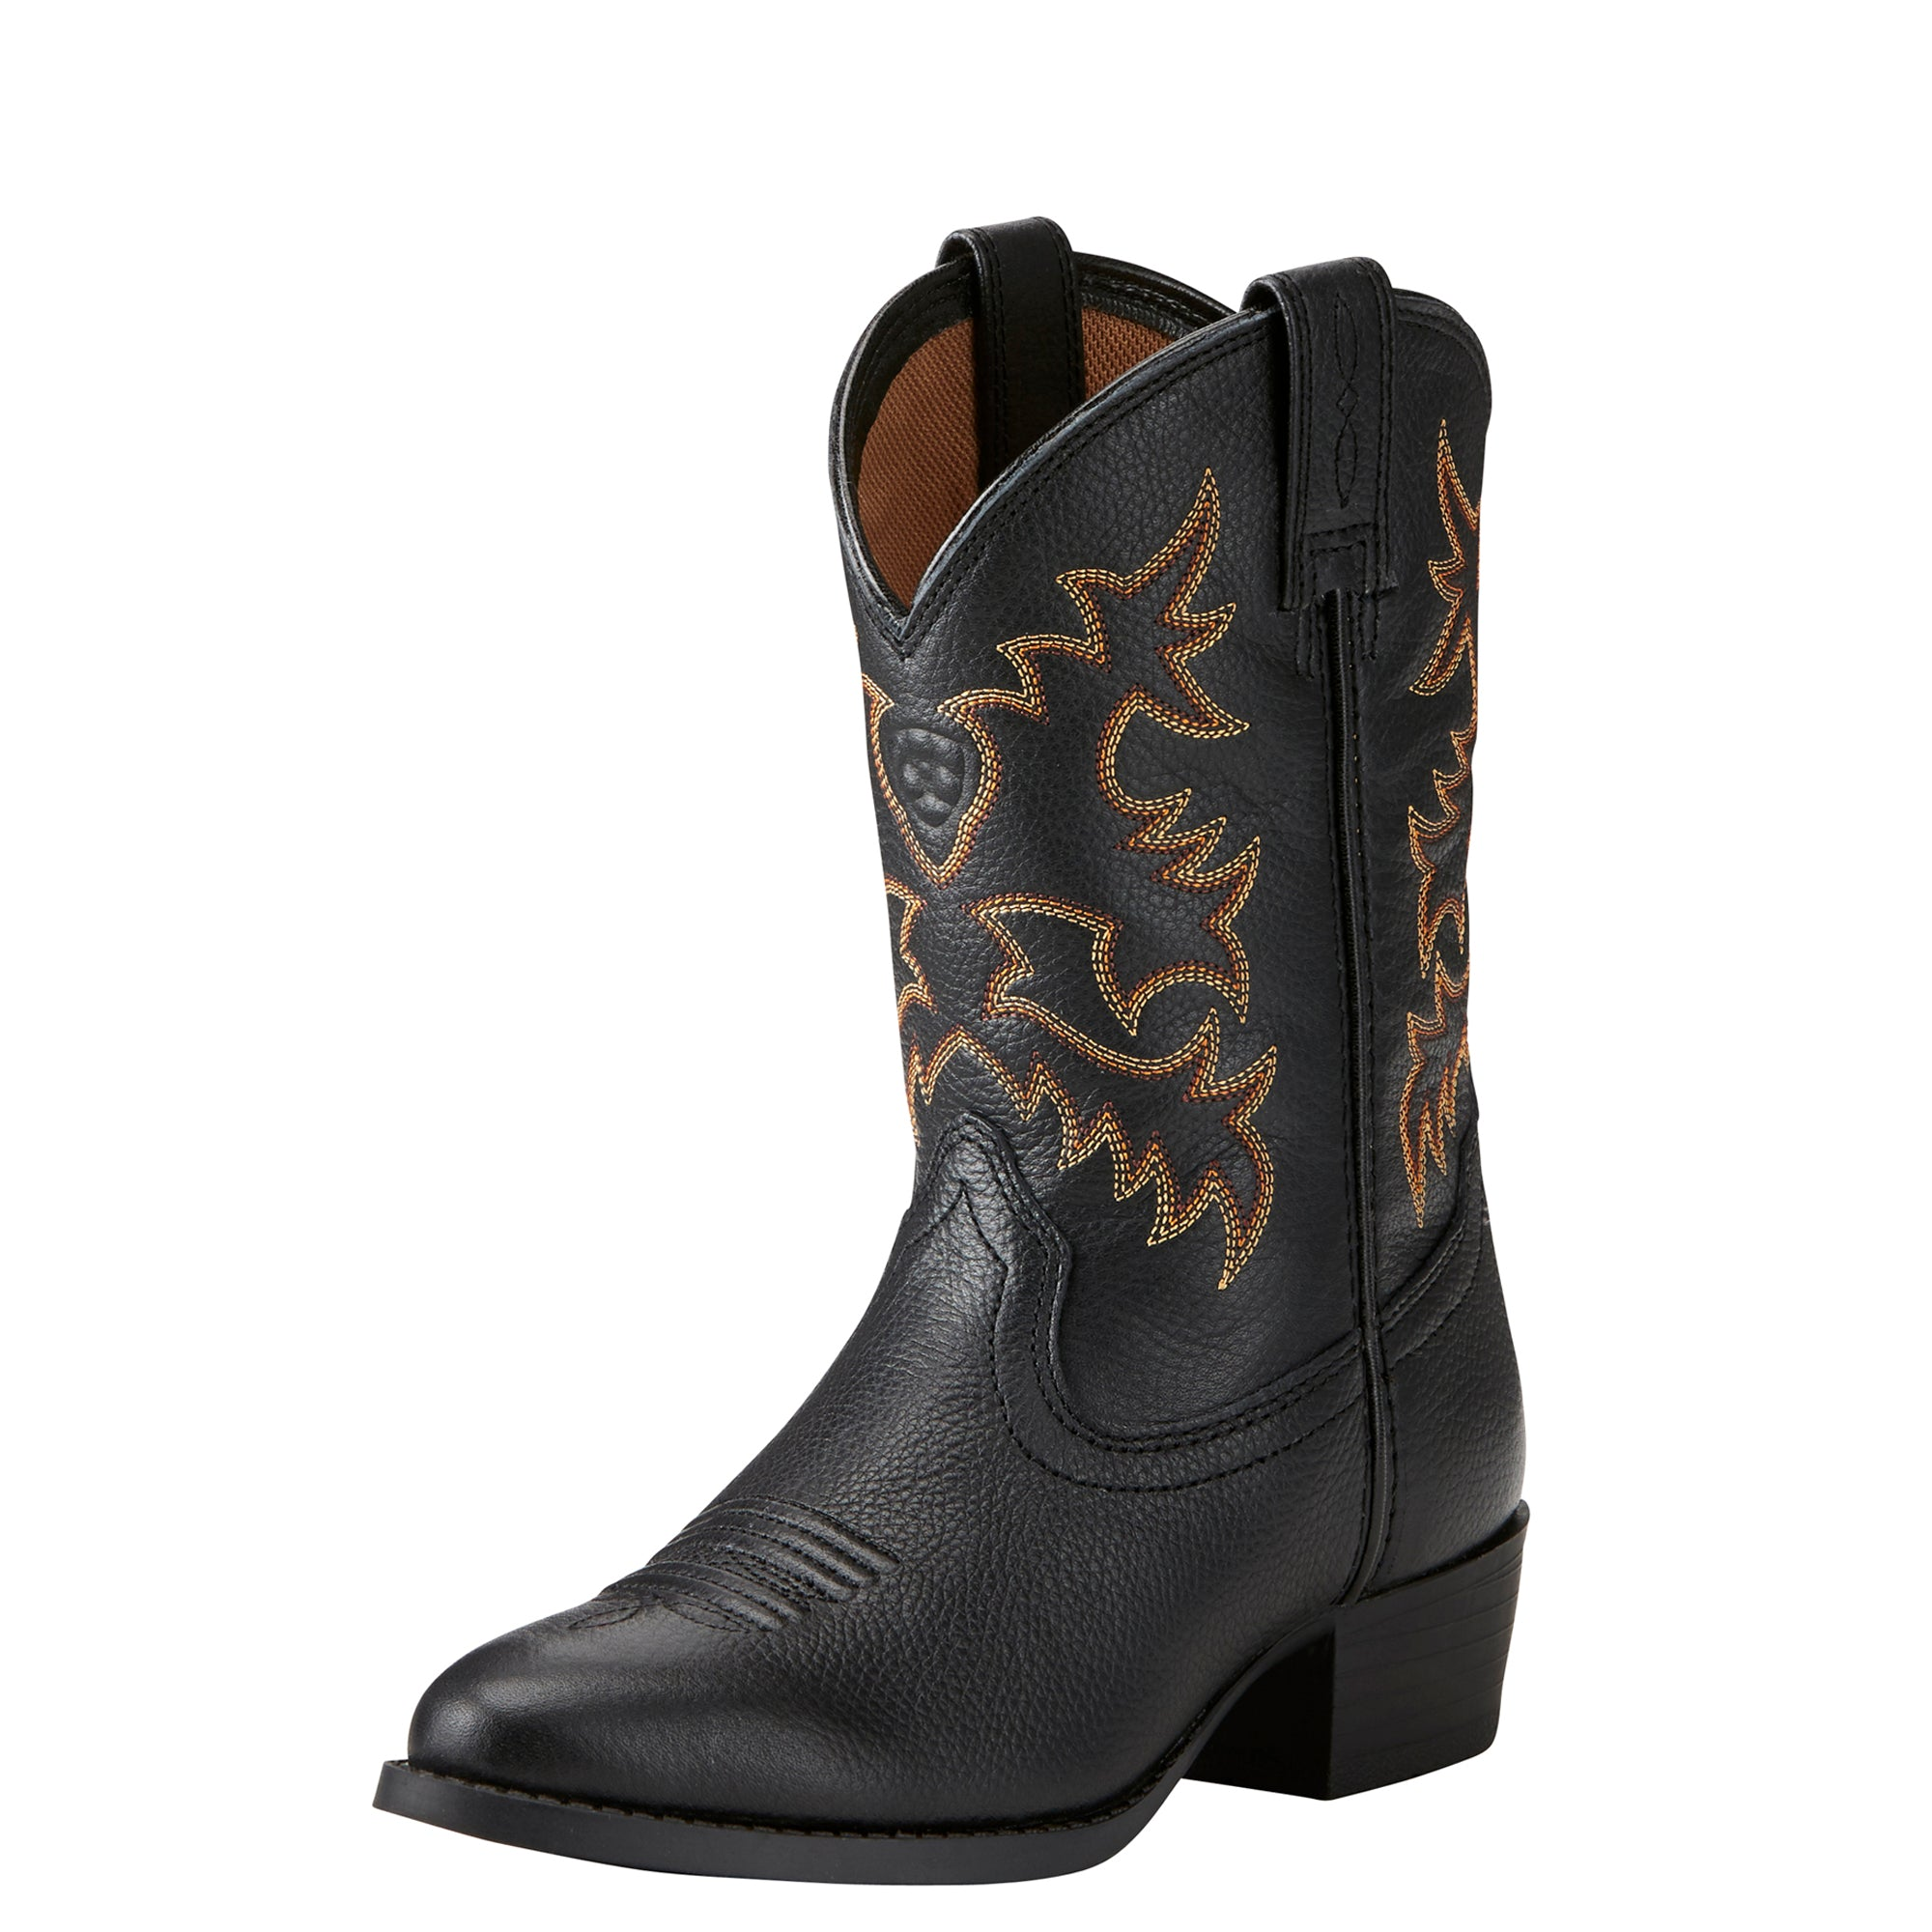 Children's/Youth's Ariat Heritage Western Boot #10021609 (8.5C-6Y)